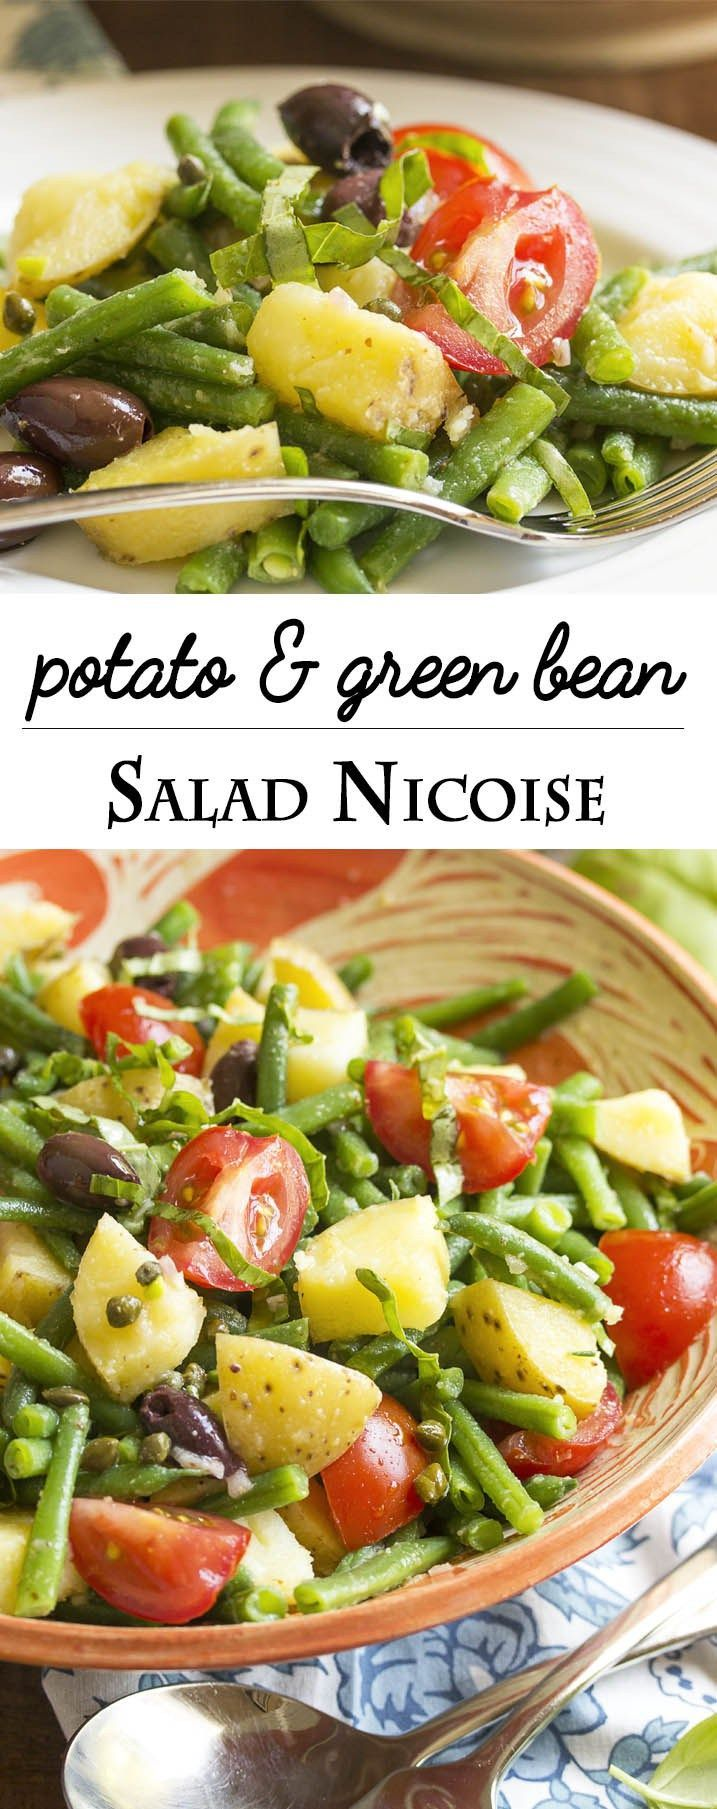 Potato Salad Nicoise - This tasty and relaxed version of salad nicoise mixes green beans, potatoes, olives, and tomatoes with a lemony, anchovy spiked dressing. Add all the ingredients to the salad bowl, toss with the dressing, and dinner is served! | justalittlebitofbacon.com